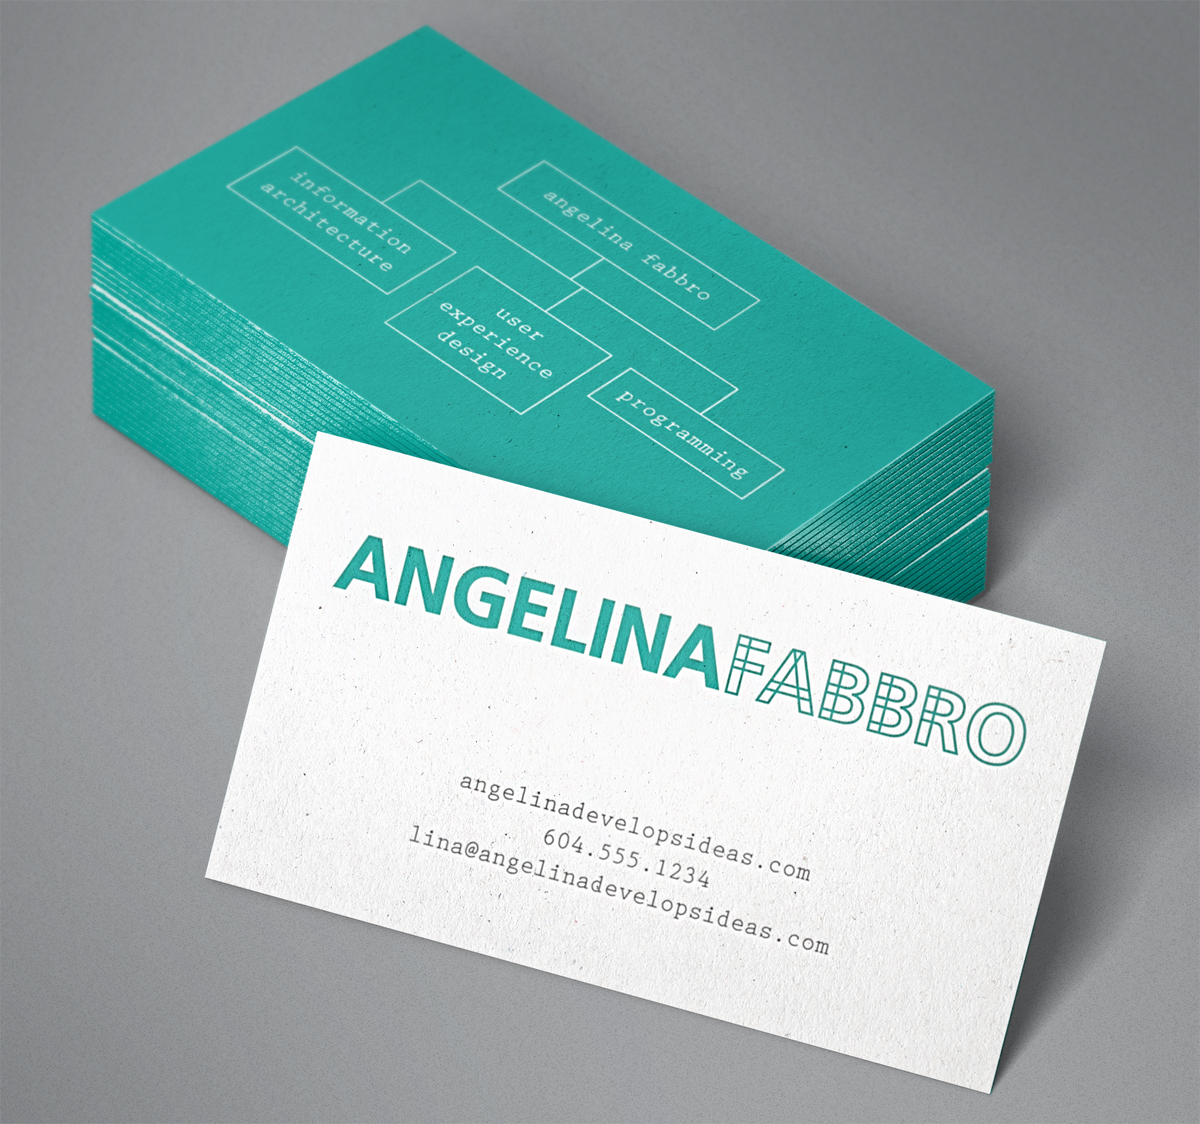 Business card design for Angelina Fabbro